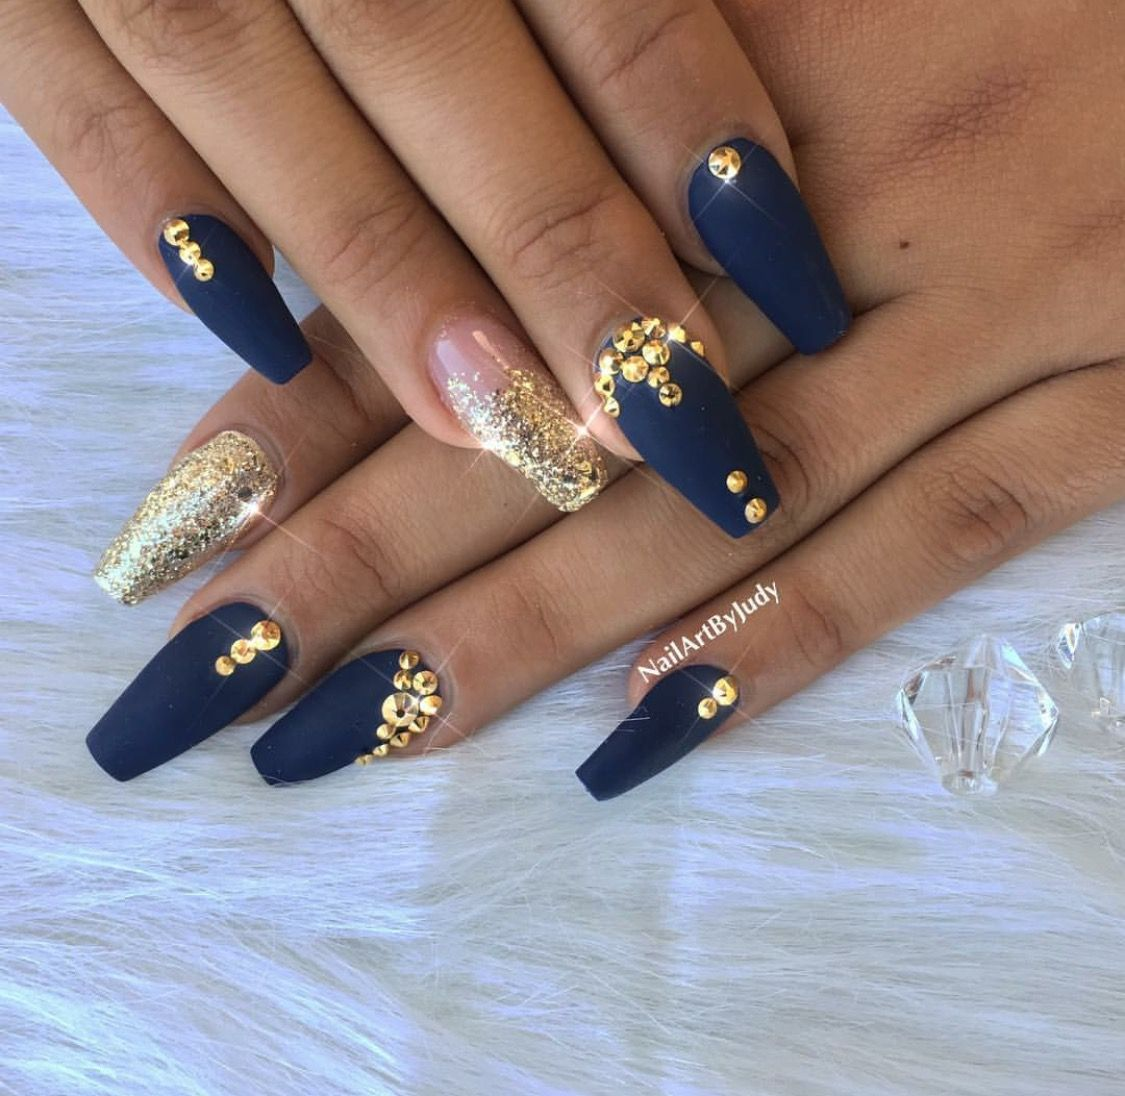 Royal Blue and Gold Nails - Nailpro | nails | Pinterest | Gold nail ...